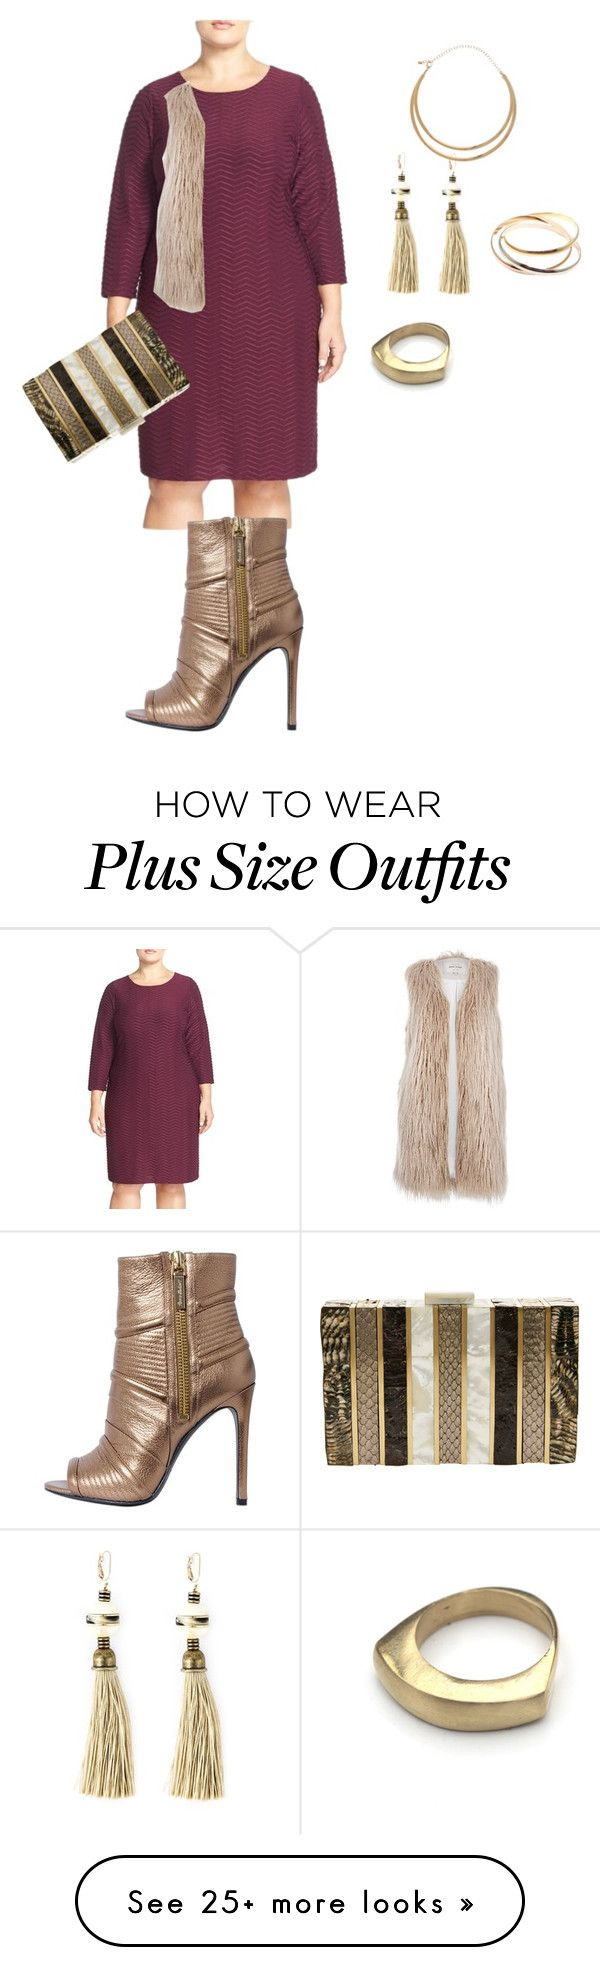 """plus size diva ready"" by kristie-payne on Polyvore featuring Calvin Klein, Pierre Balmain, River Island, Lanvin, Emm Kuo, M&Co and plus size dresses"